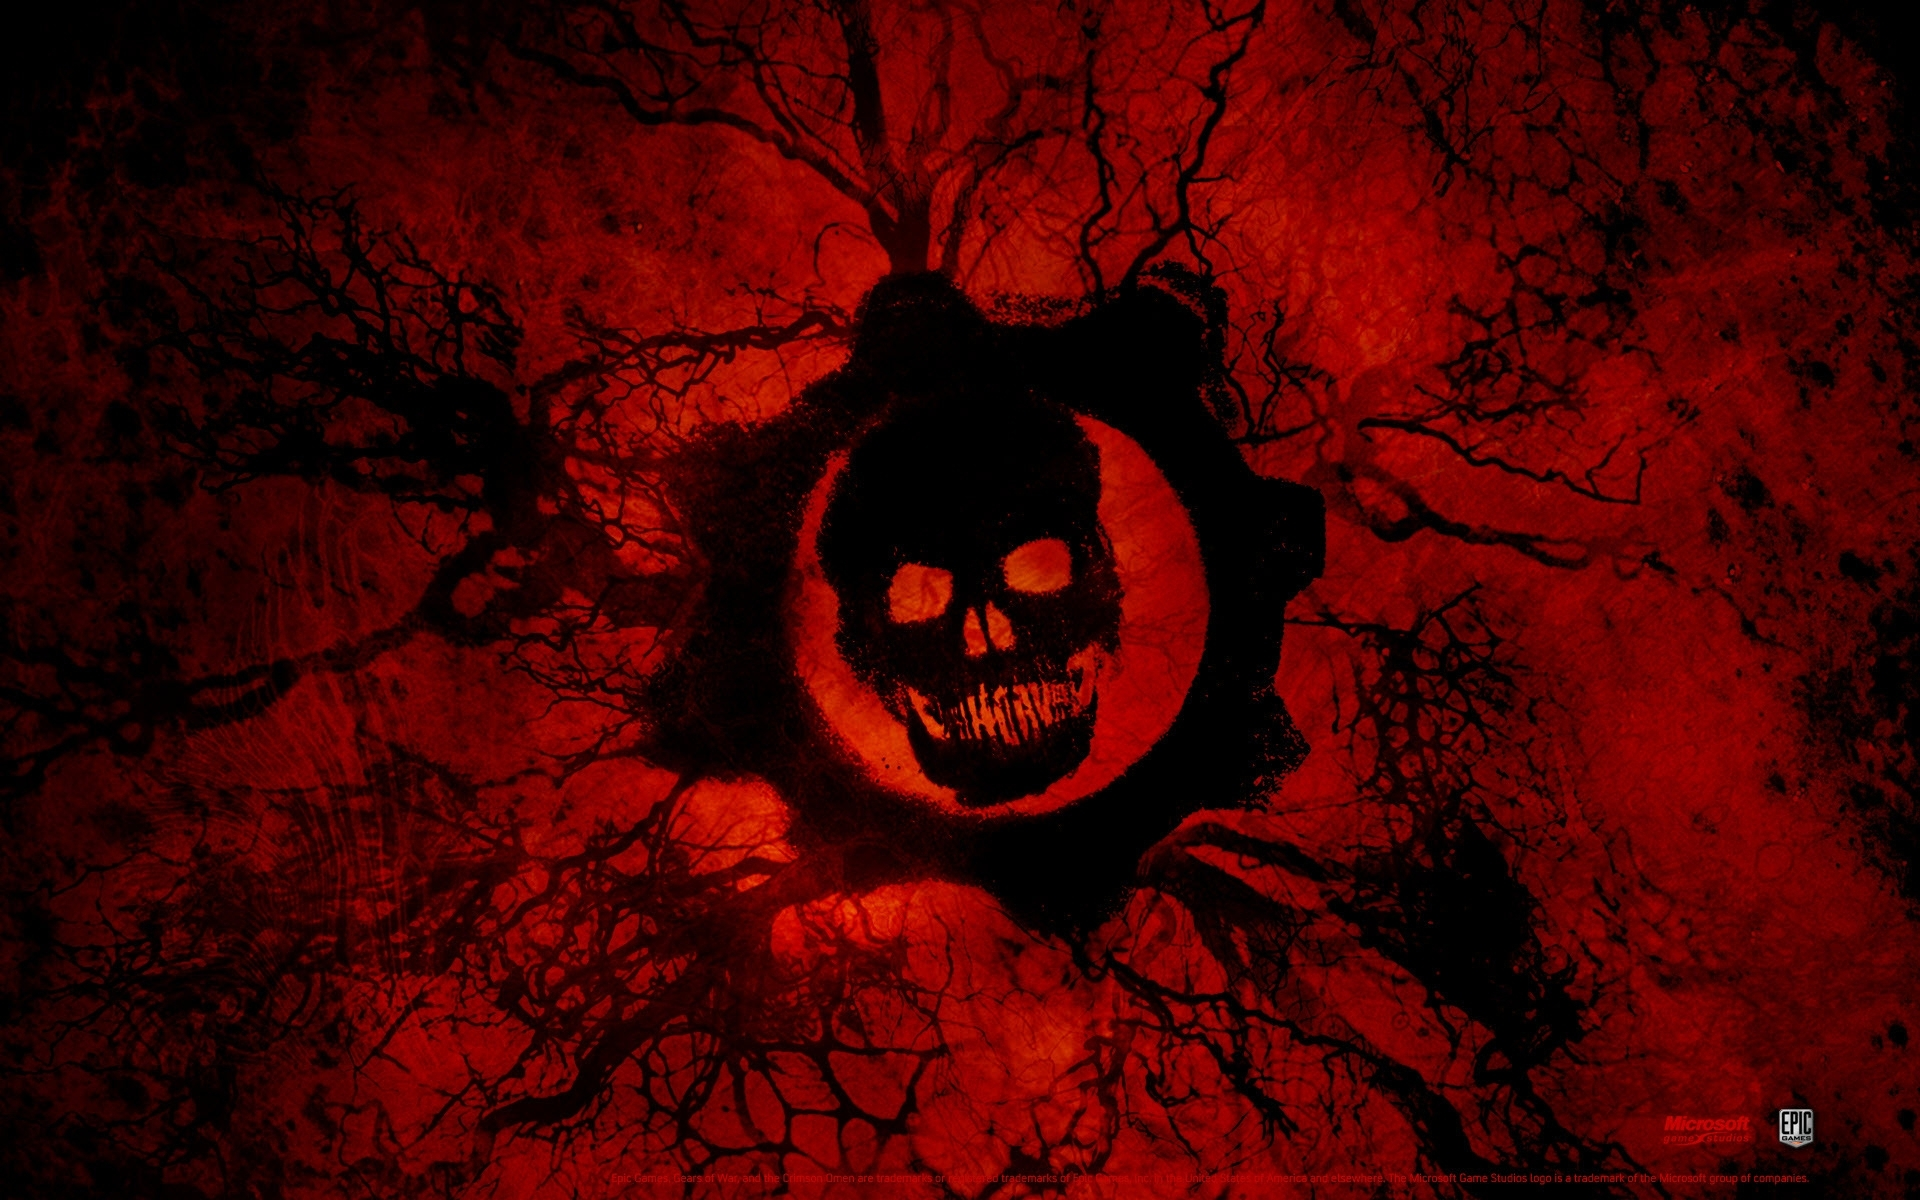 gears of war 3 game official wallpapers | hd wallpapers | id #8522